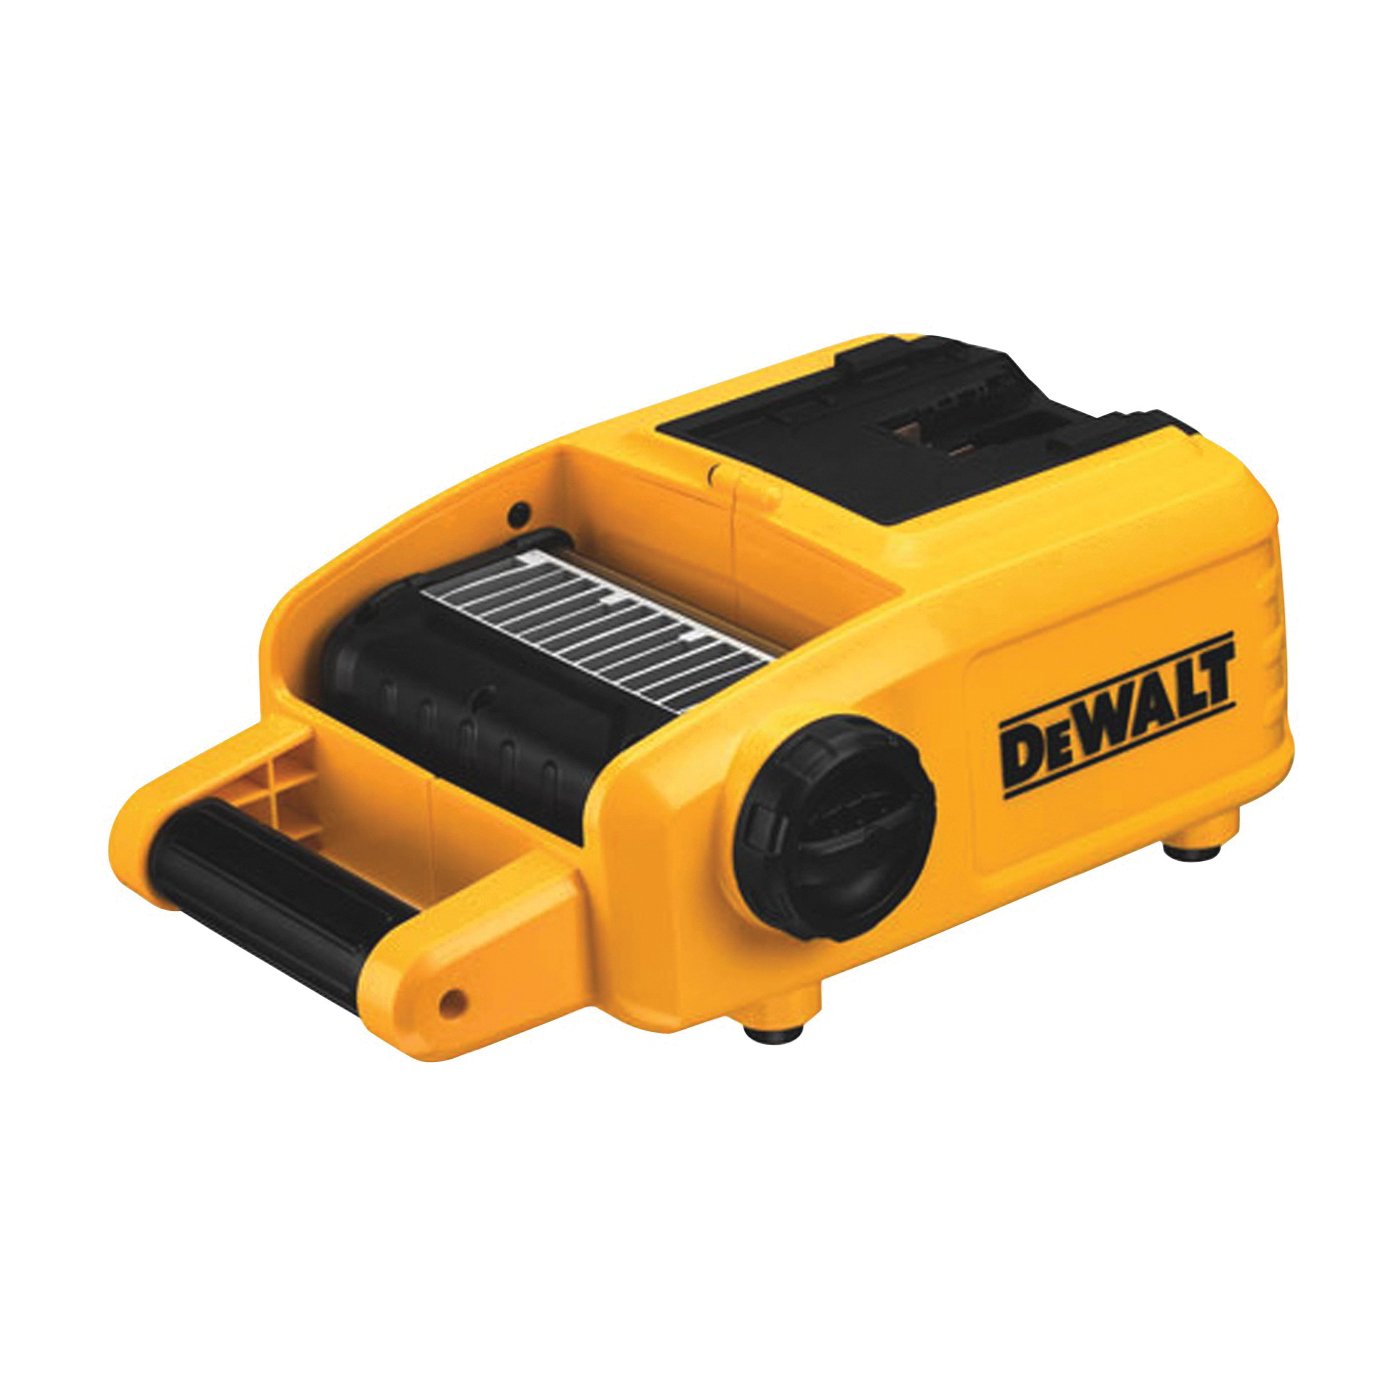 Picture of DeWALT DCL060 Cordless Worklight, 20 V, LED Lamp, 1001 to 5000 Lumens, 6100 K Color Temp, Black/Yellow